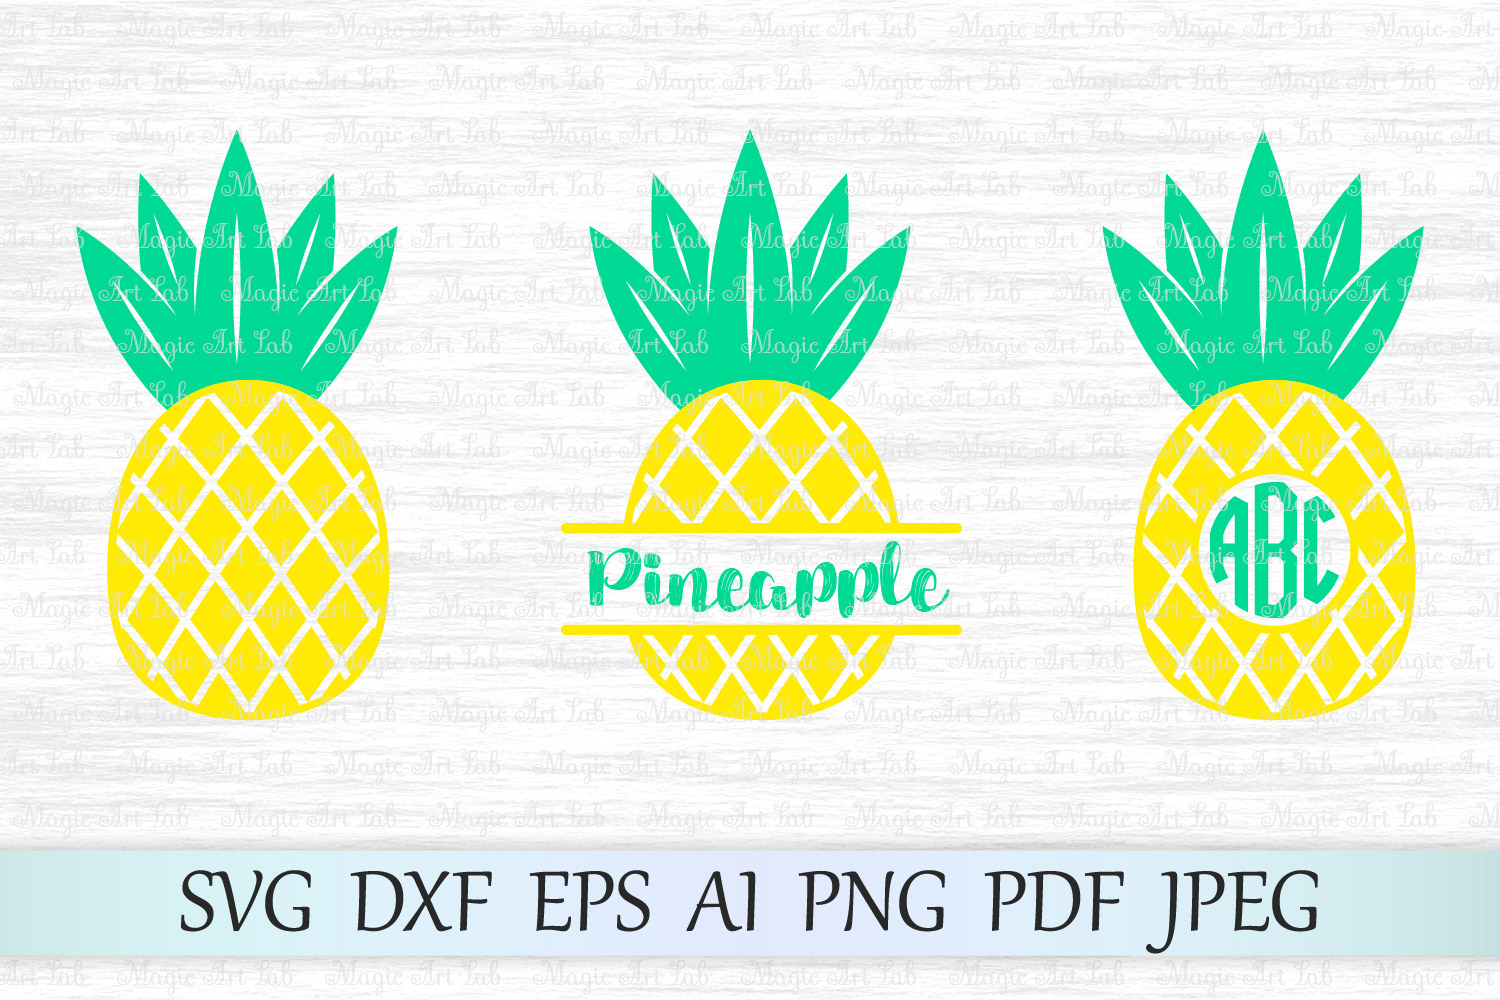 Download Free Pineapple Graphic By Magicartlab Creative Fabrica for Cricut Explore, Silhouette and other cutting machines.